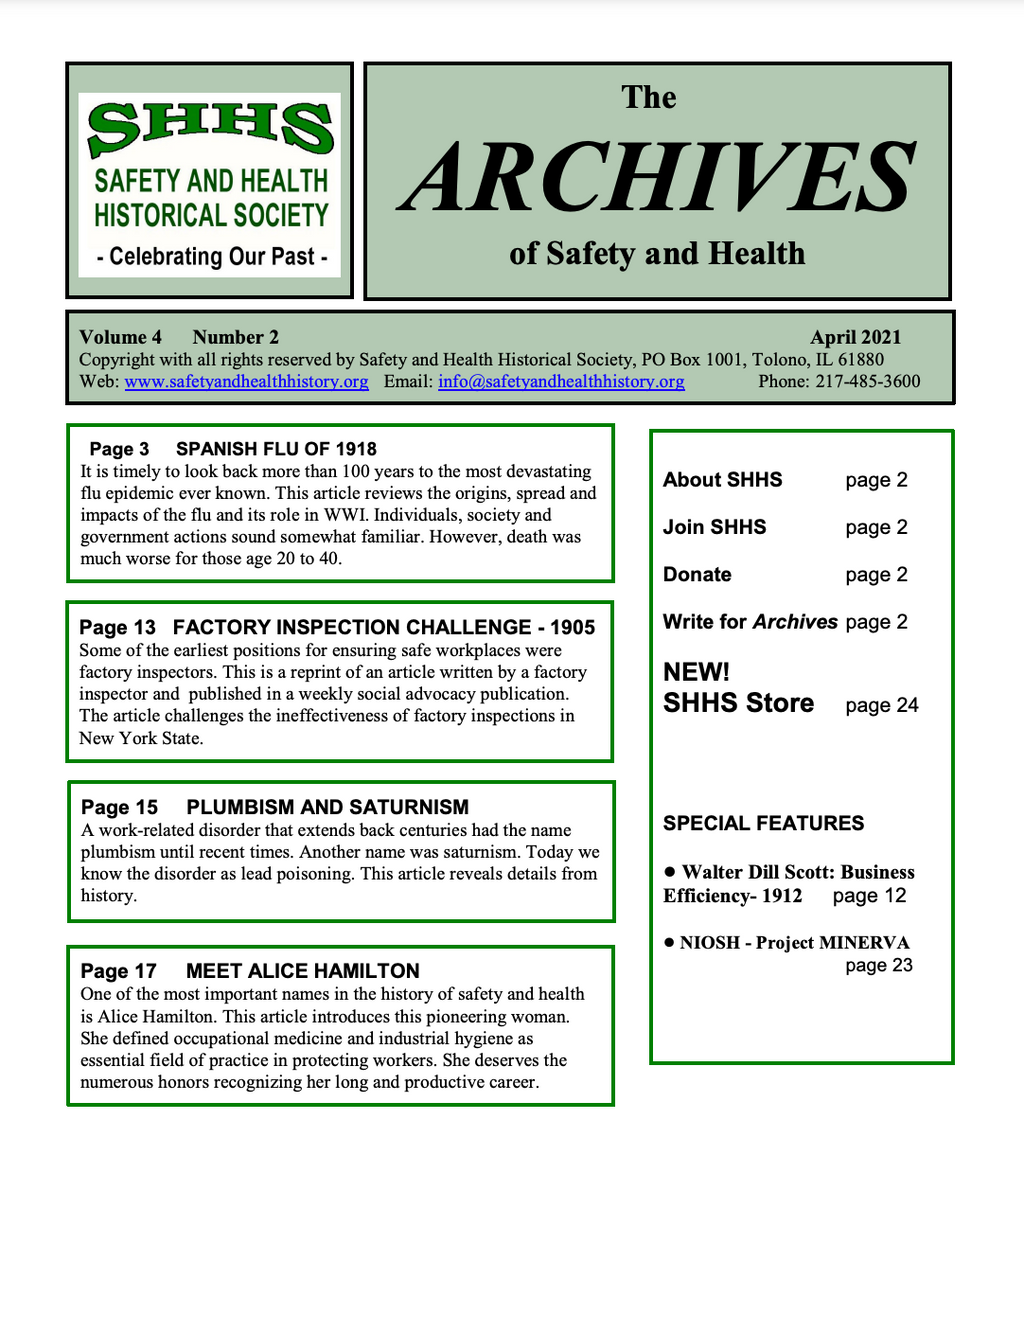 Volume 4 Number 2 - The Archives Of Safety And Health